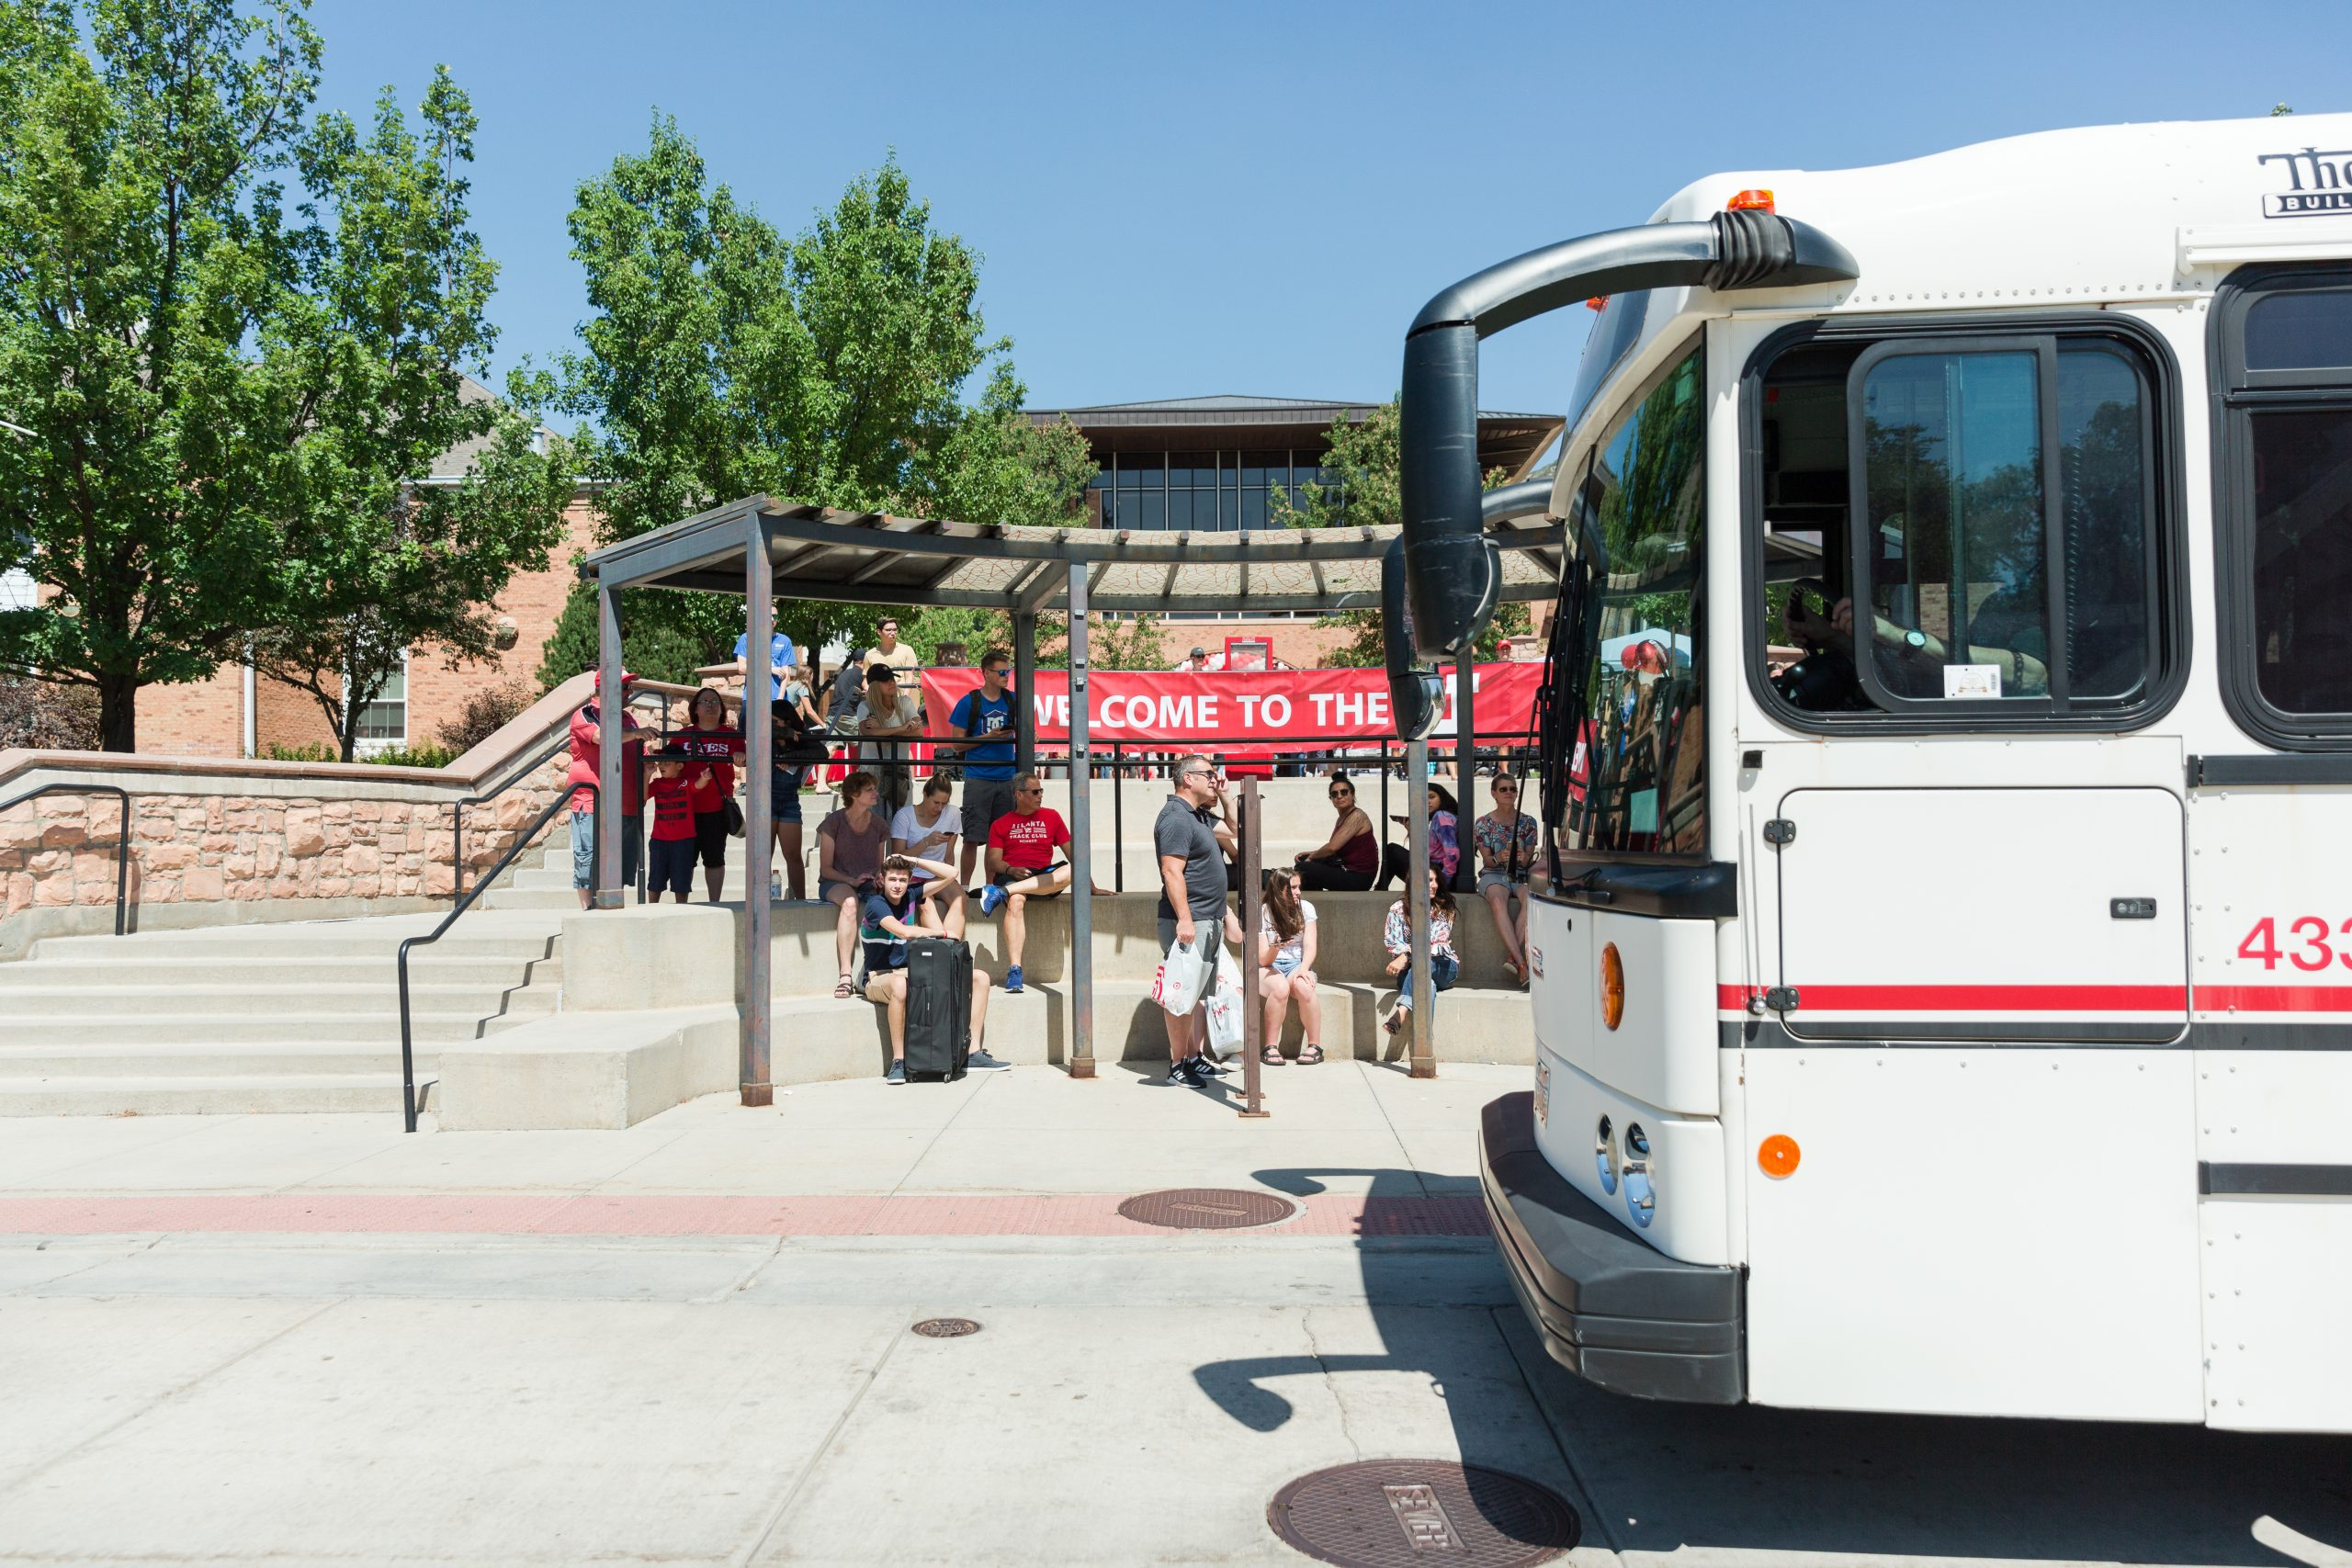 Campus Shuttle at PHC shuttle stop